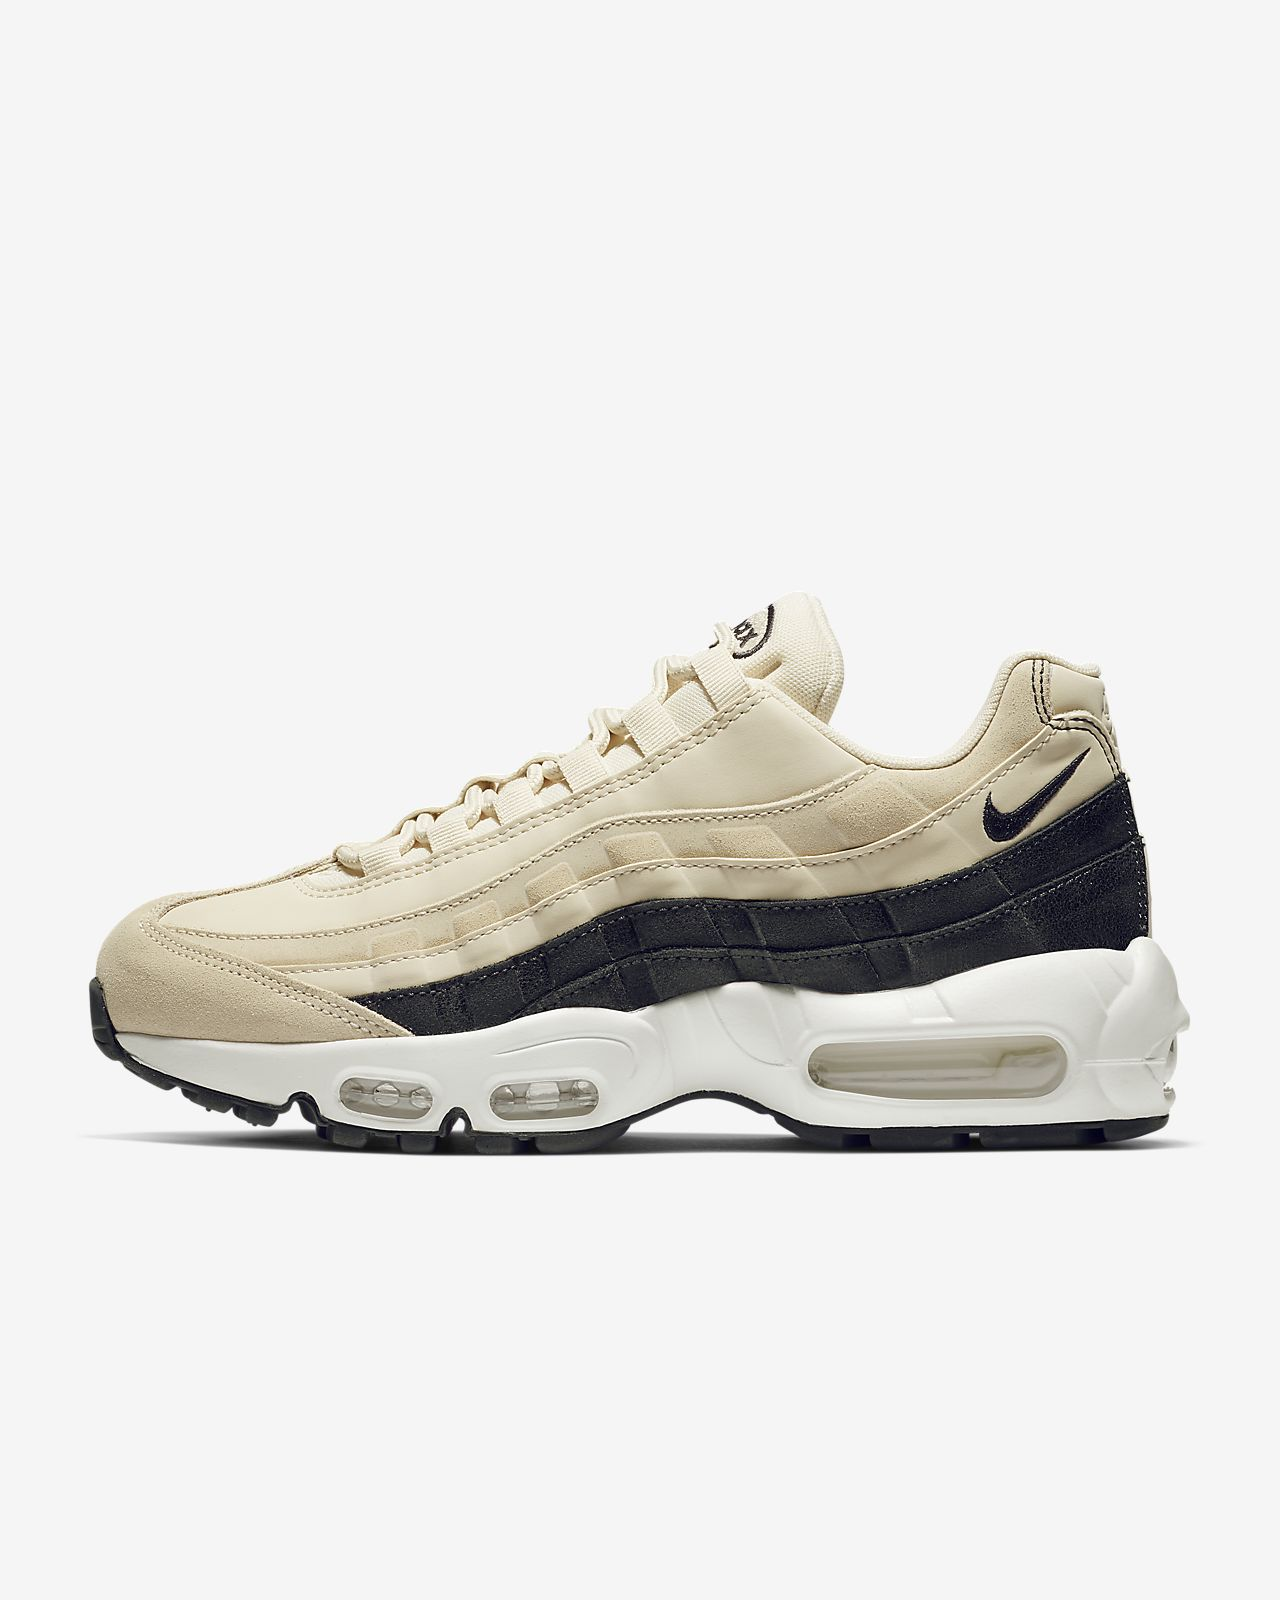 huge discount 6182e e5433 ... Nike Air Max 95 Premium Women s Shoe